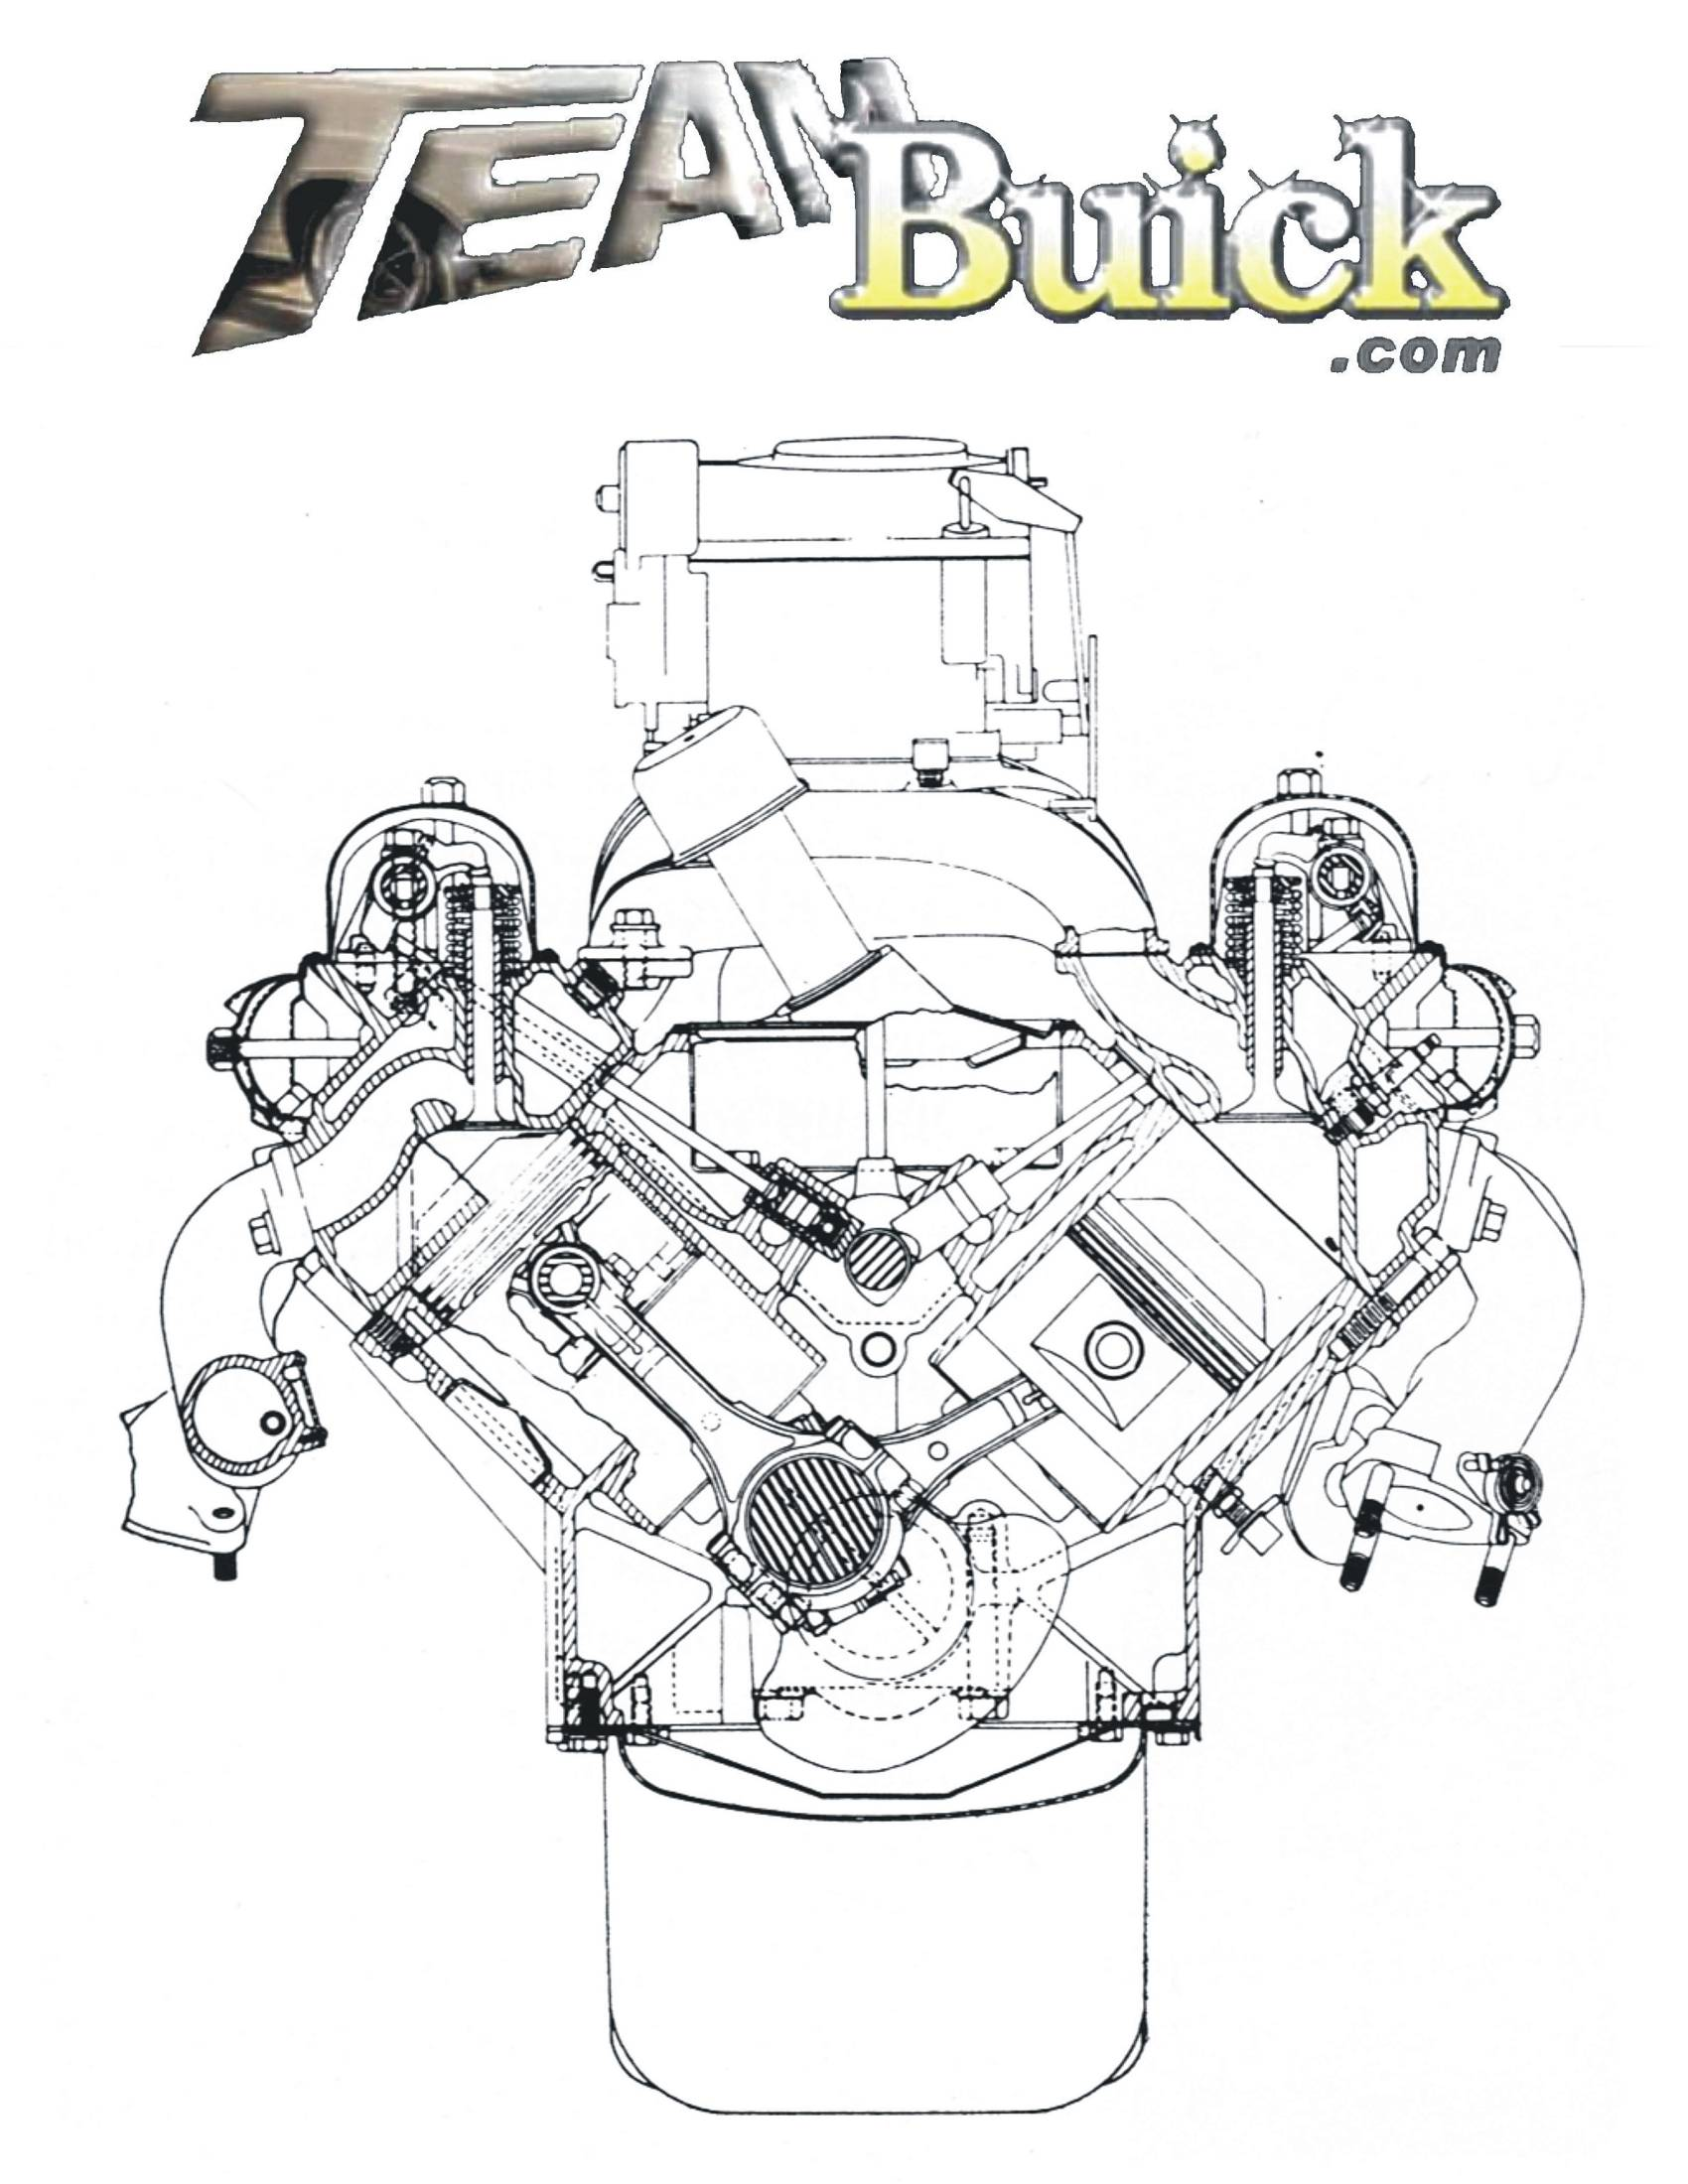 Buick Nailhead outline